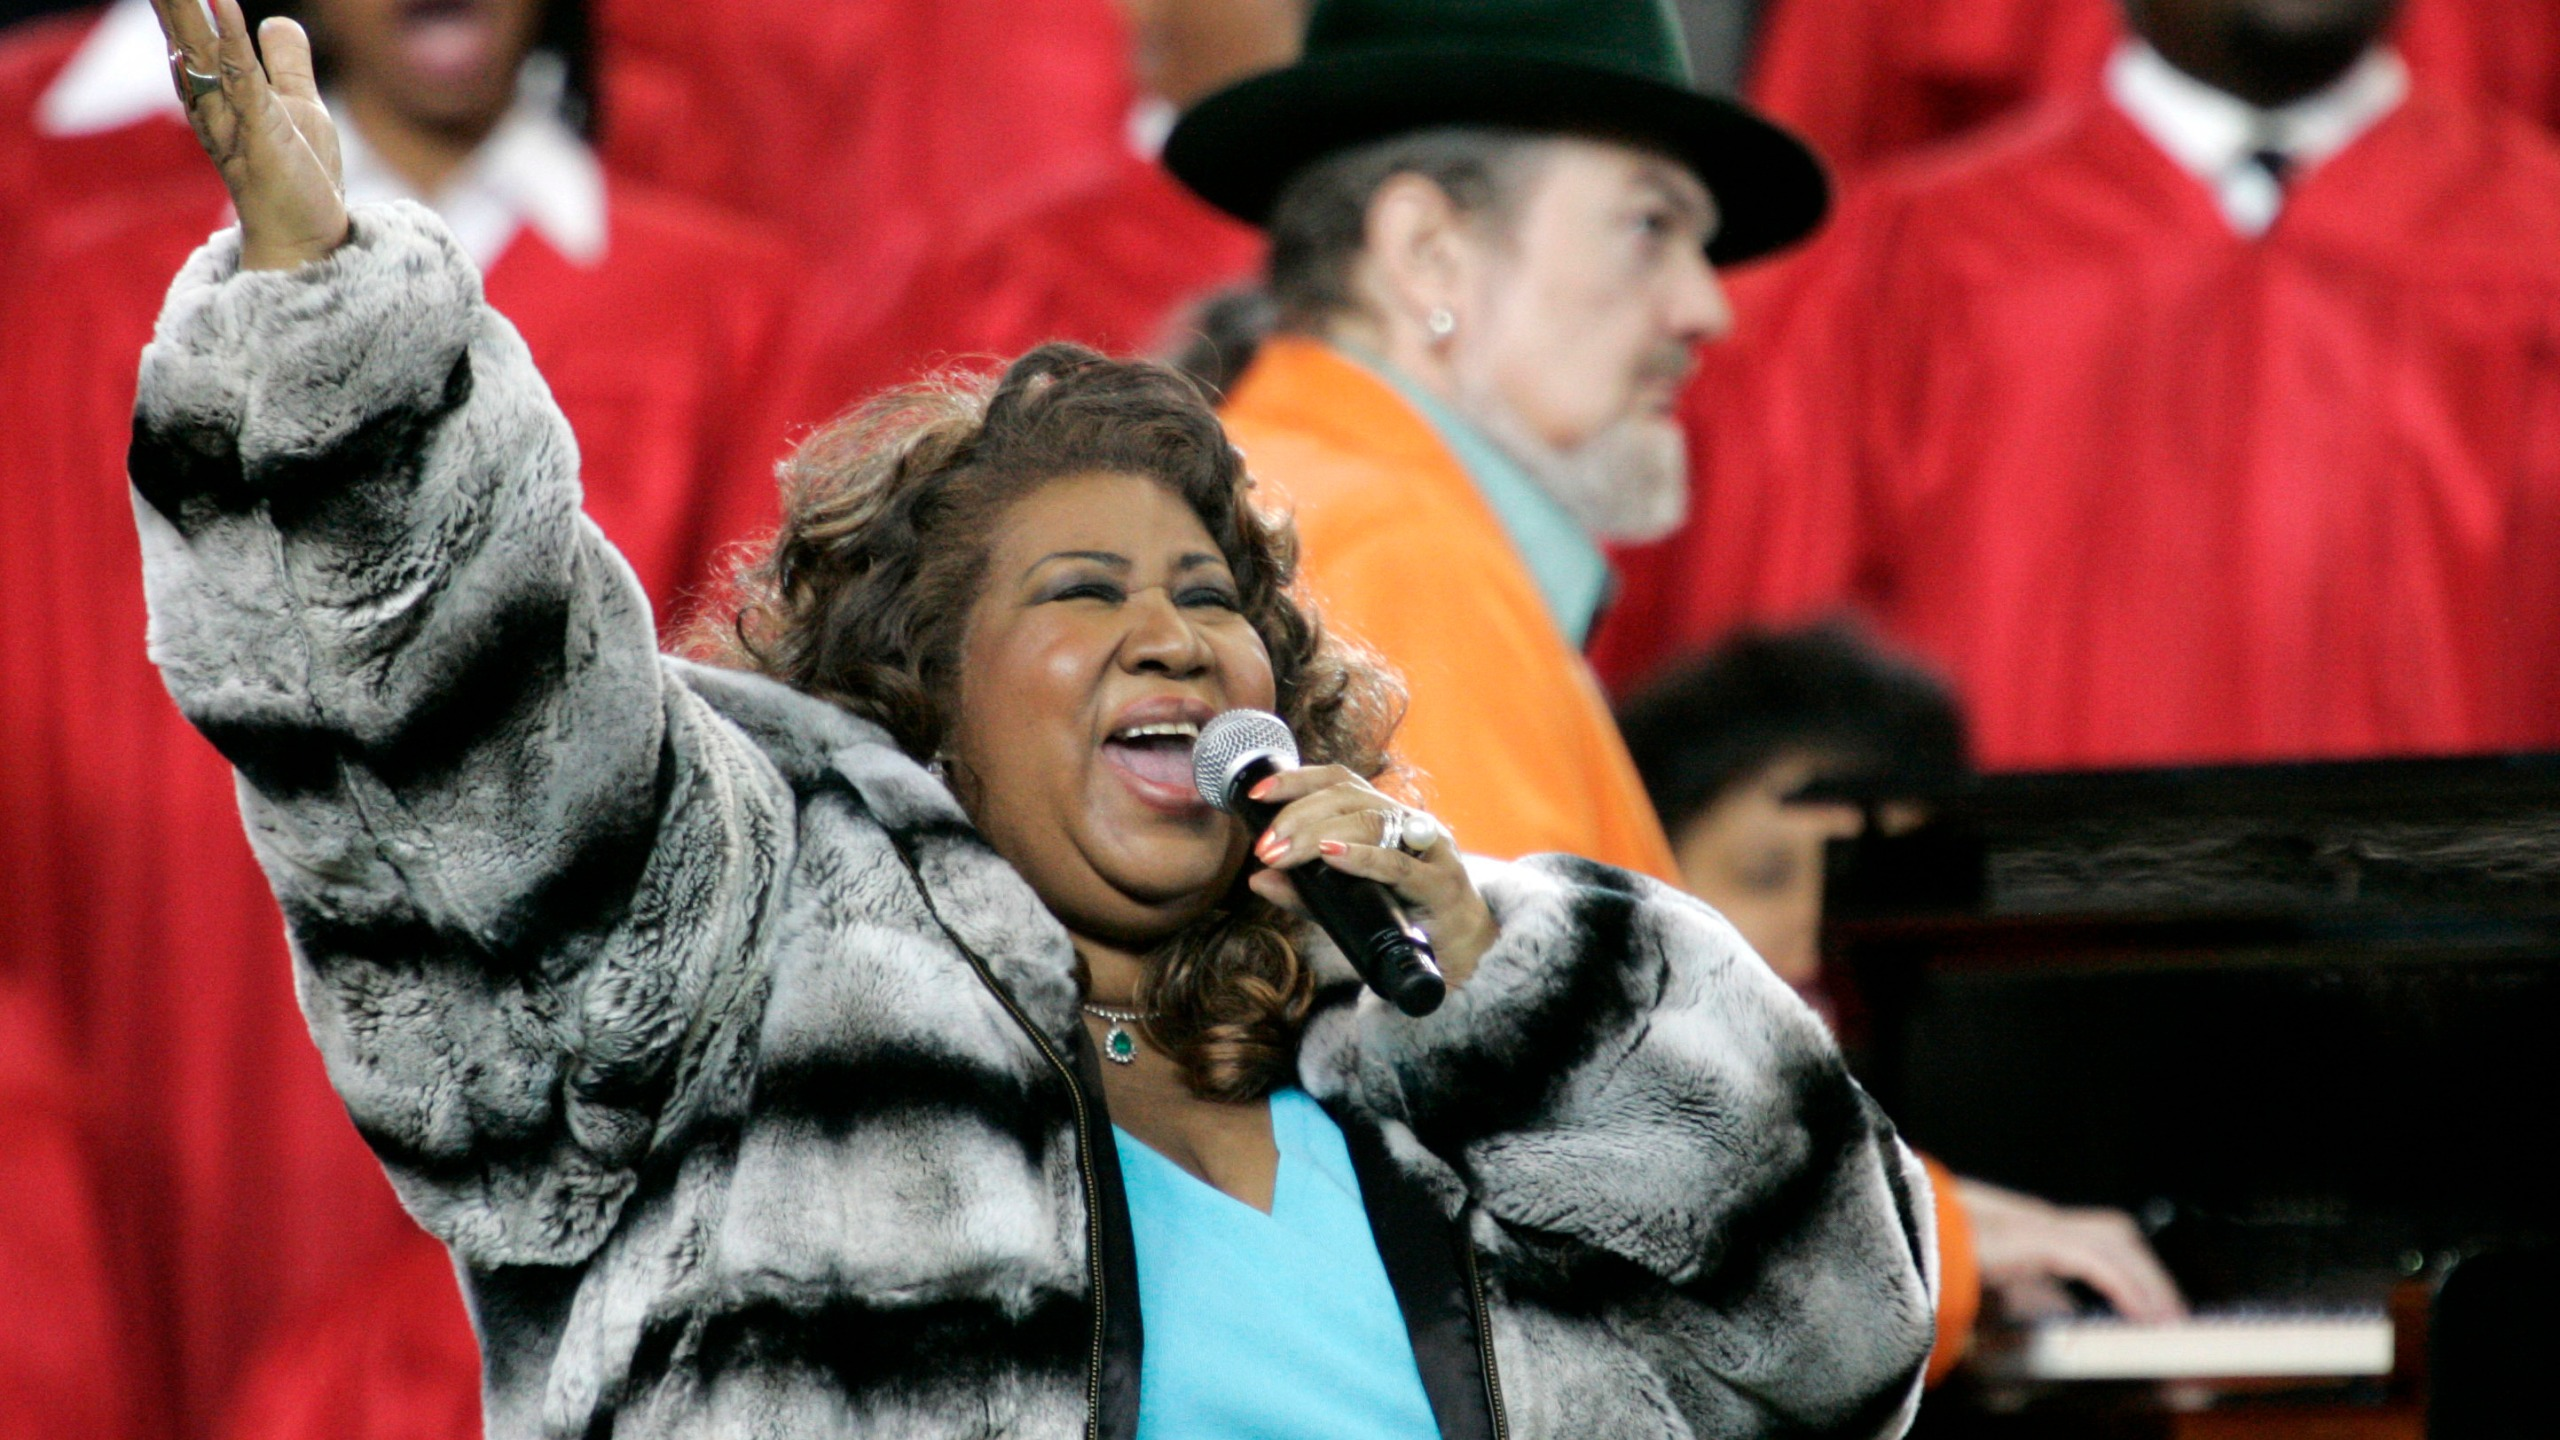 Aretha Franklin, FORD FIELD SEATTLE SEAHAWKS PITTSBURGH STEELERS FRANKLIN